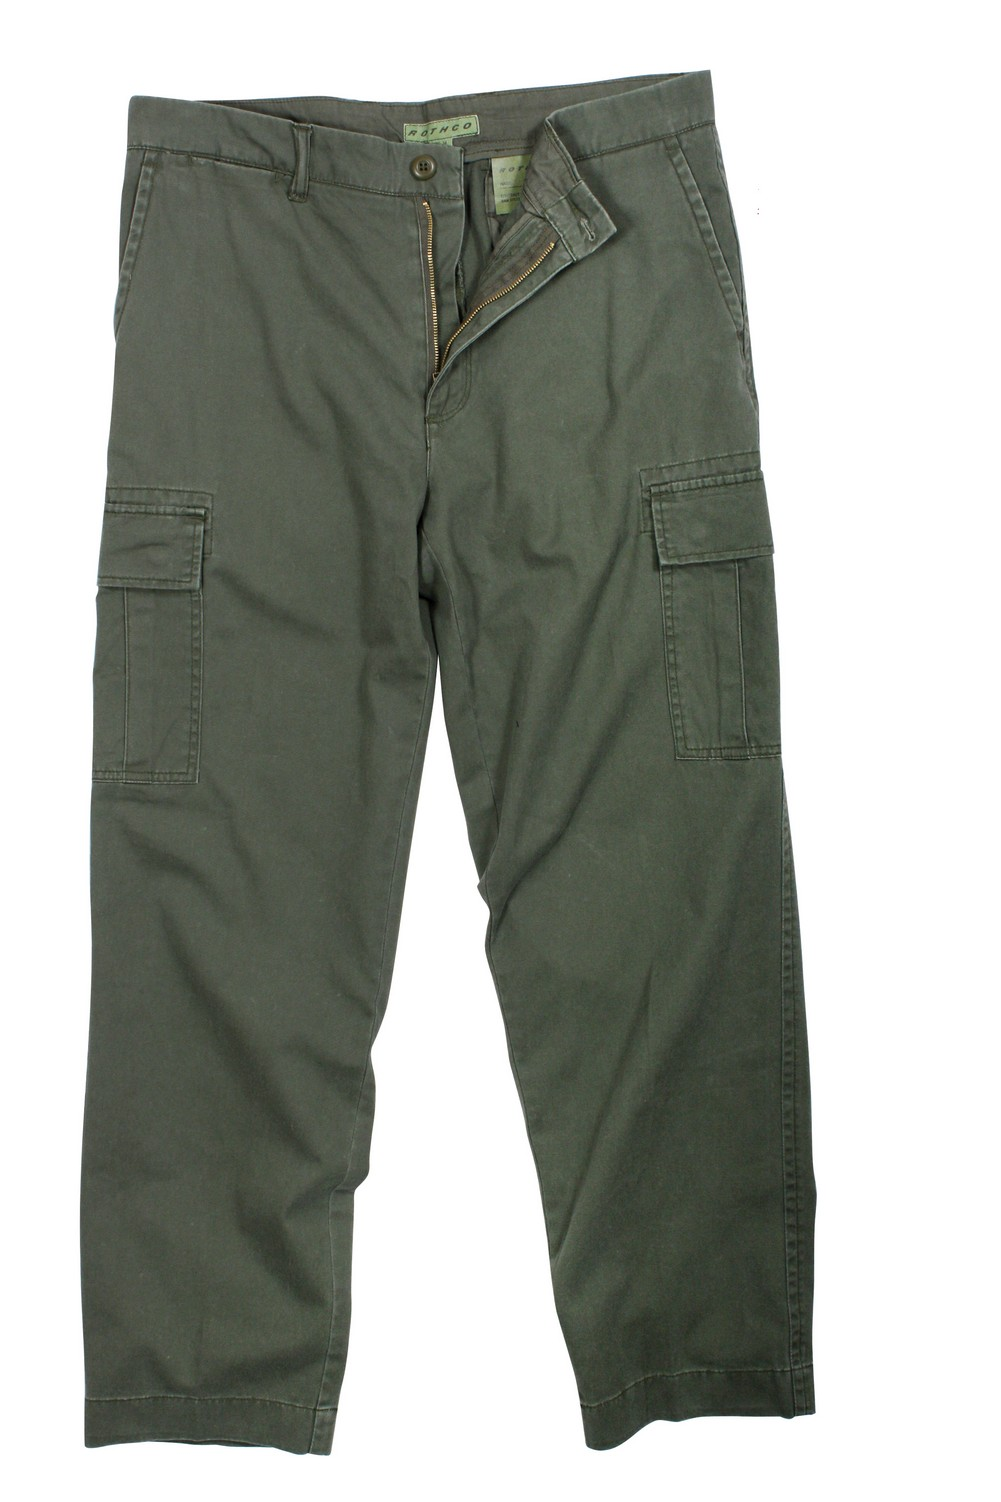 Rothco Mens Pants - Vintage Flat Front Cargo, Olive Drab by Rothco at Sears.com